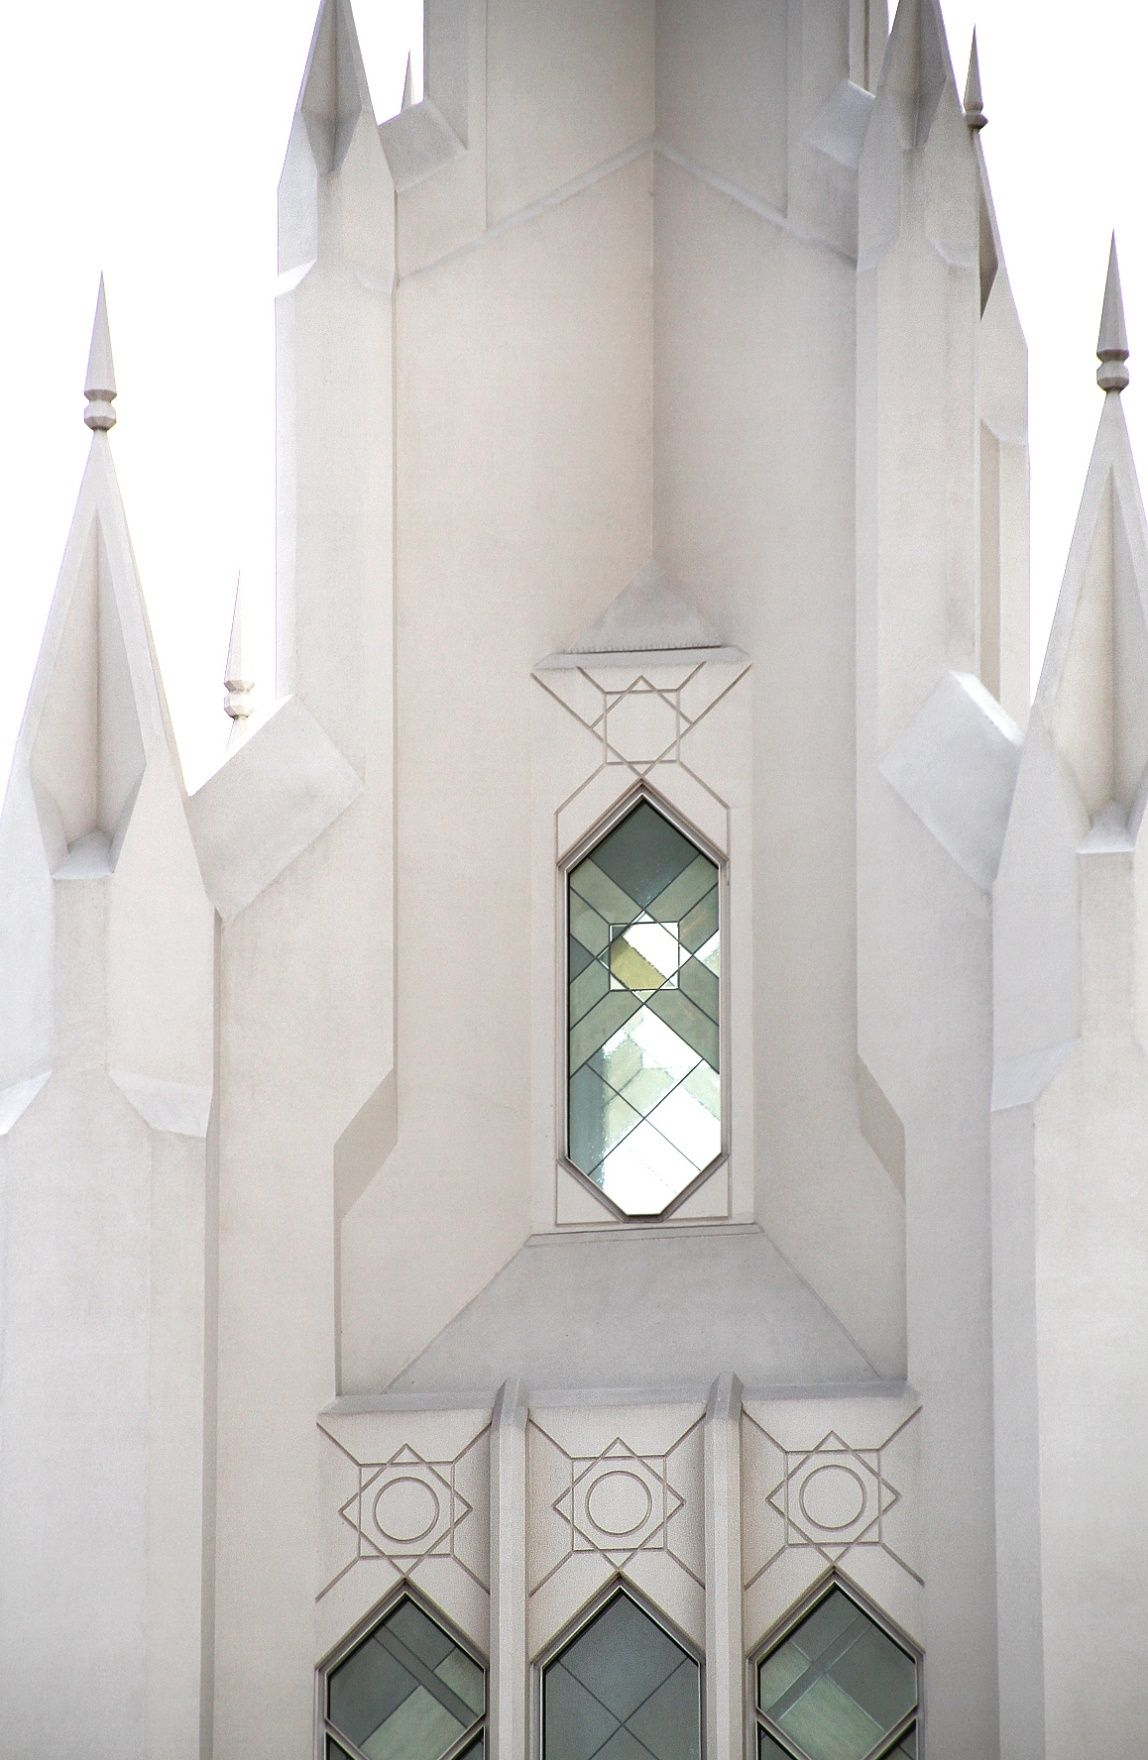 Why This Symbol Appears 10000 Times In The San Diego Temple I